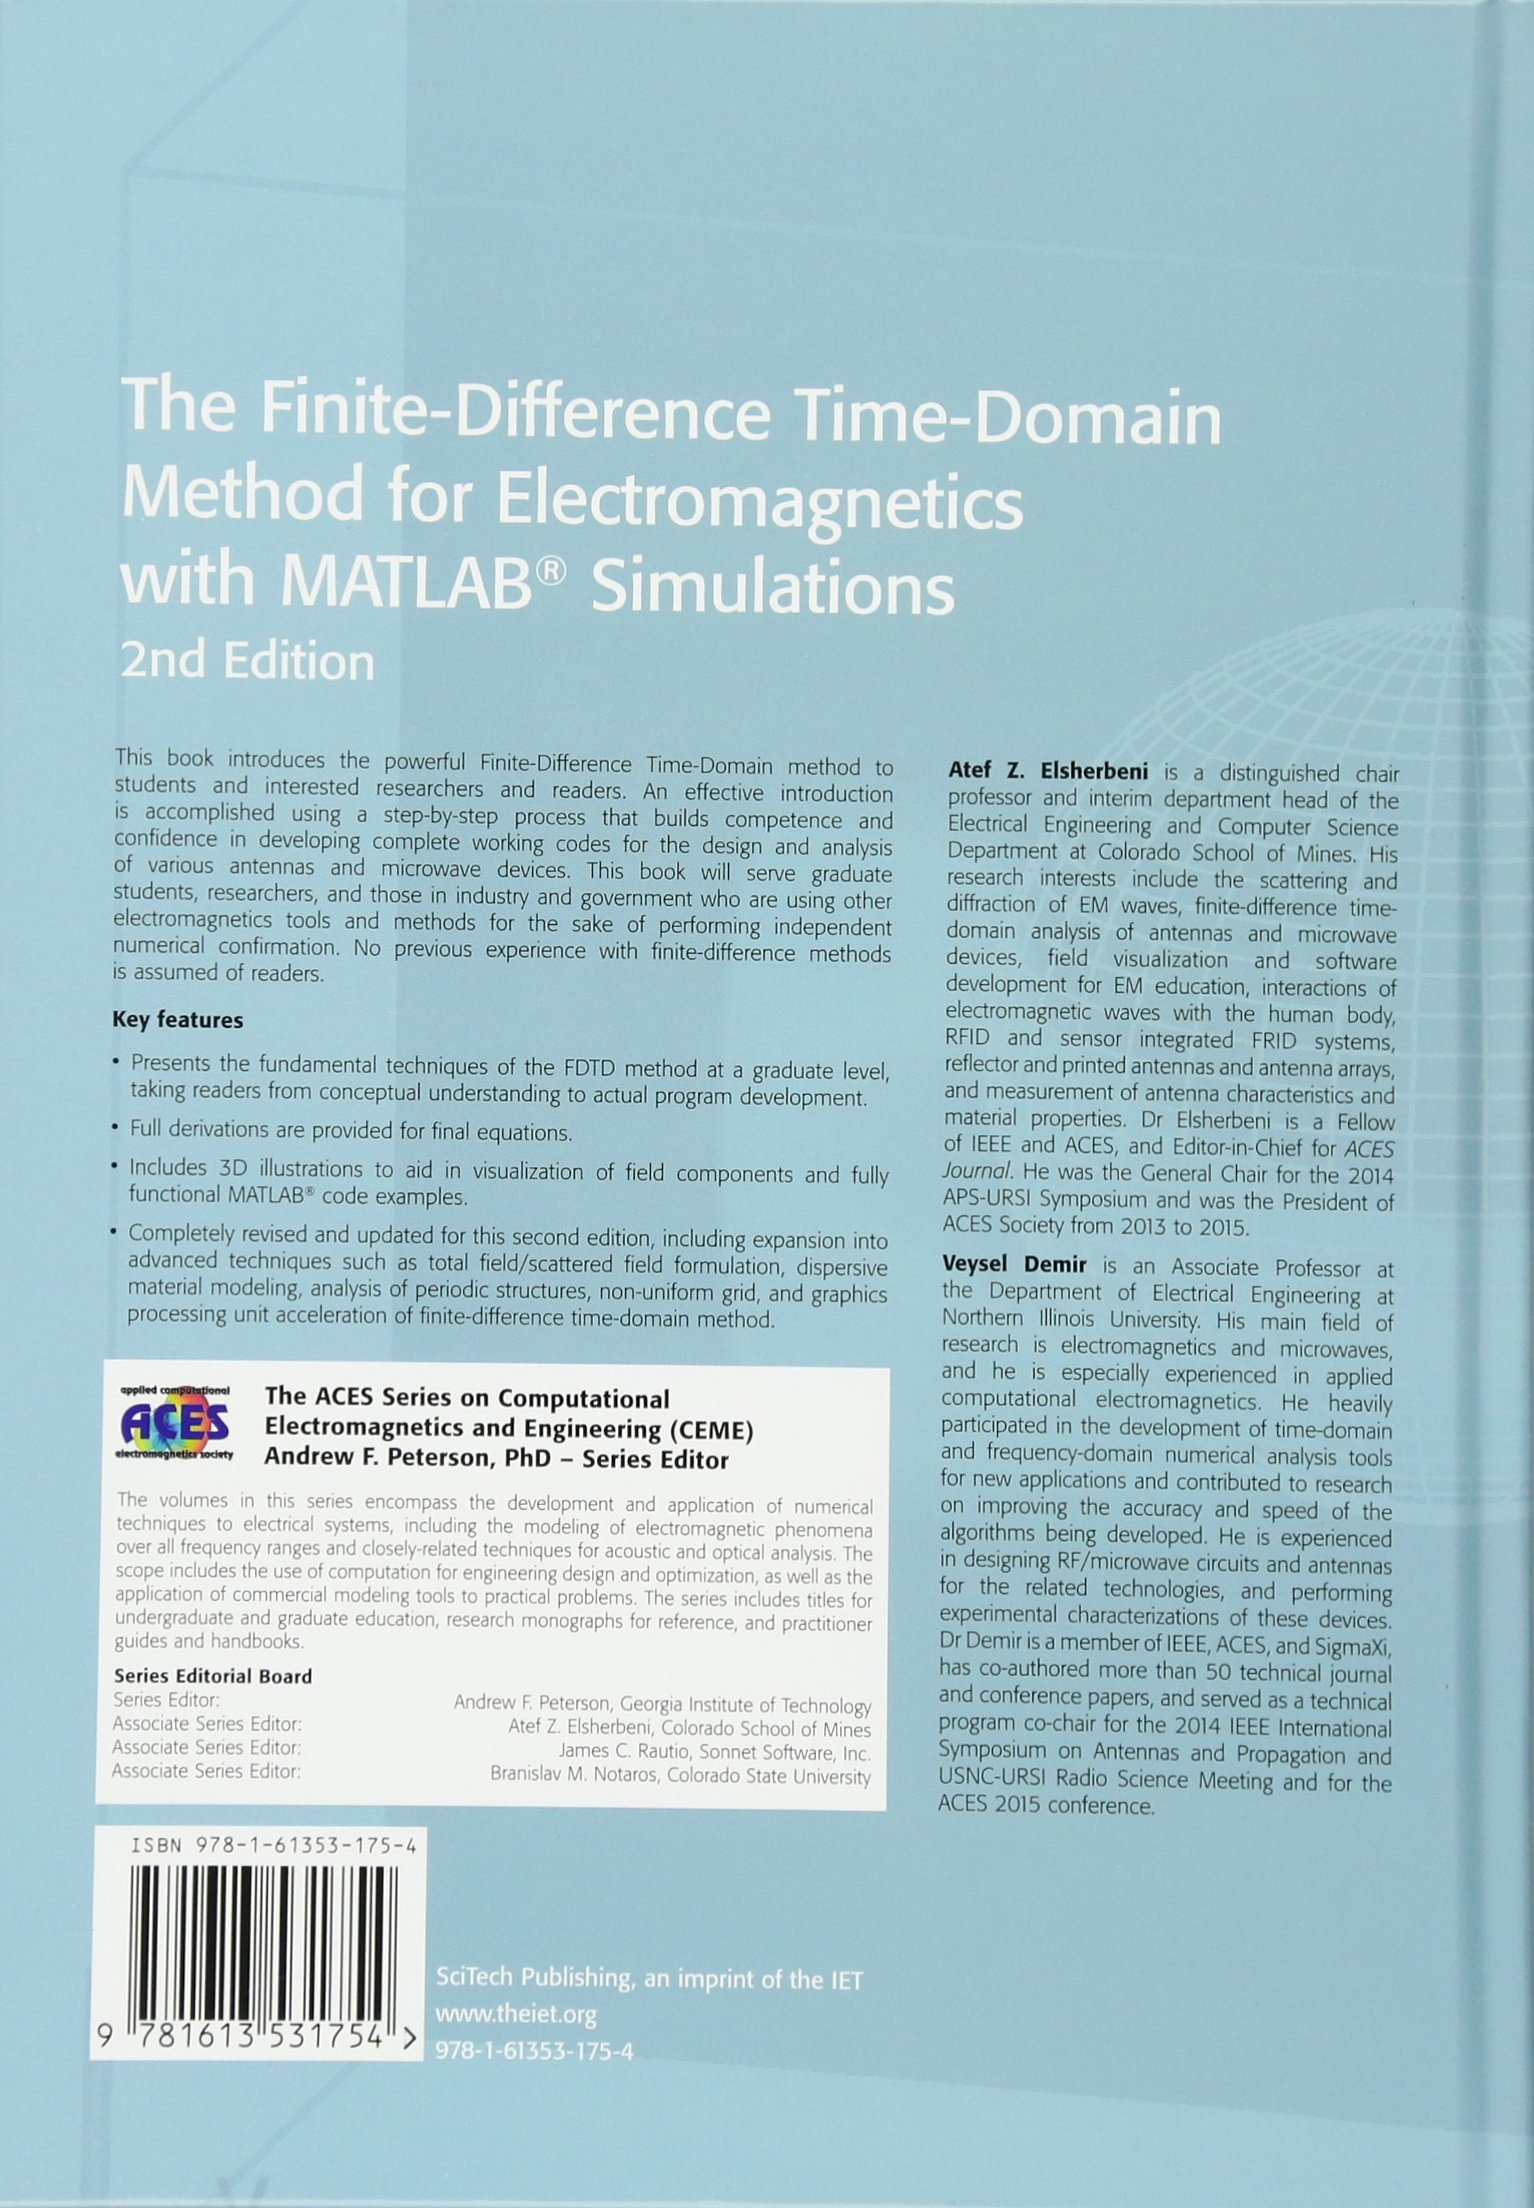 Buy The Finite-Difference Time-Domain Method for Electromagnetics